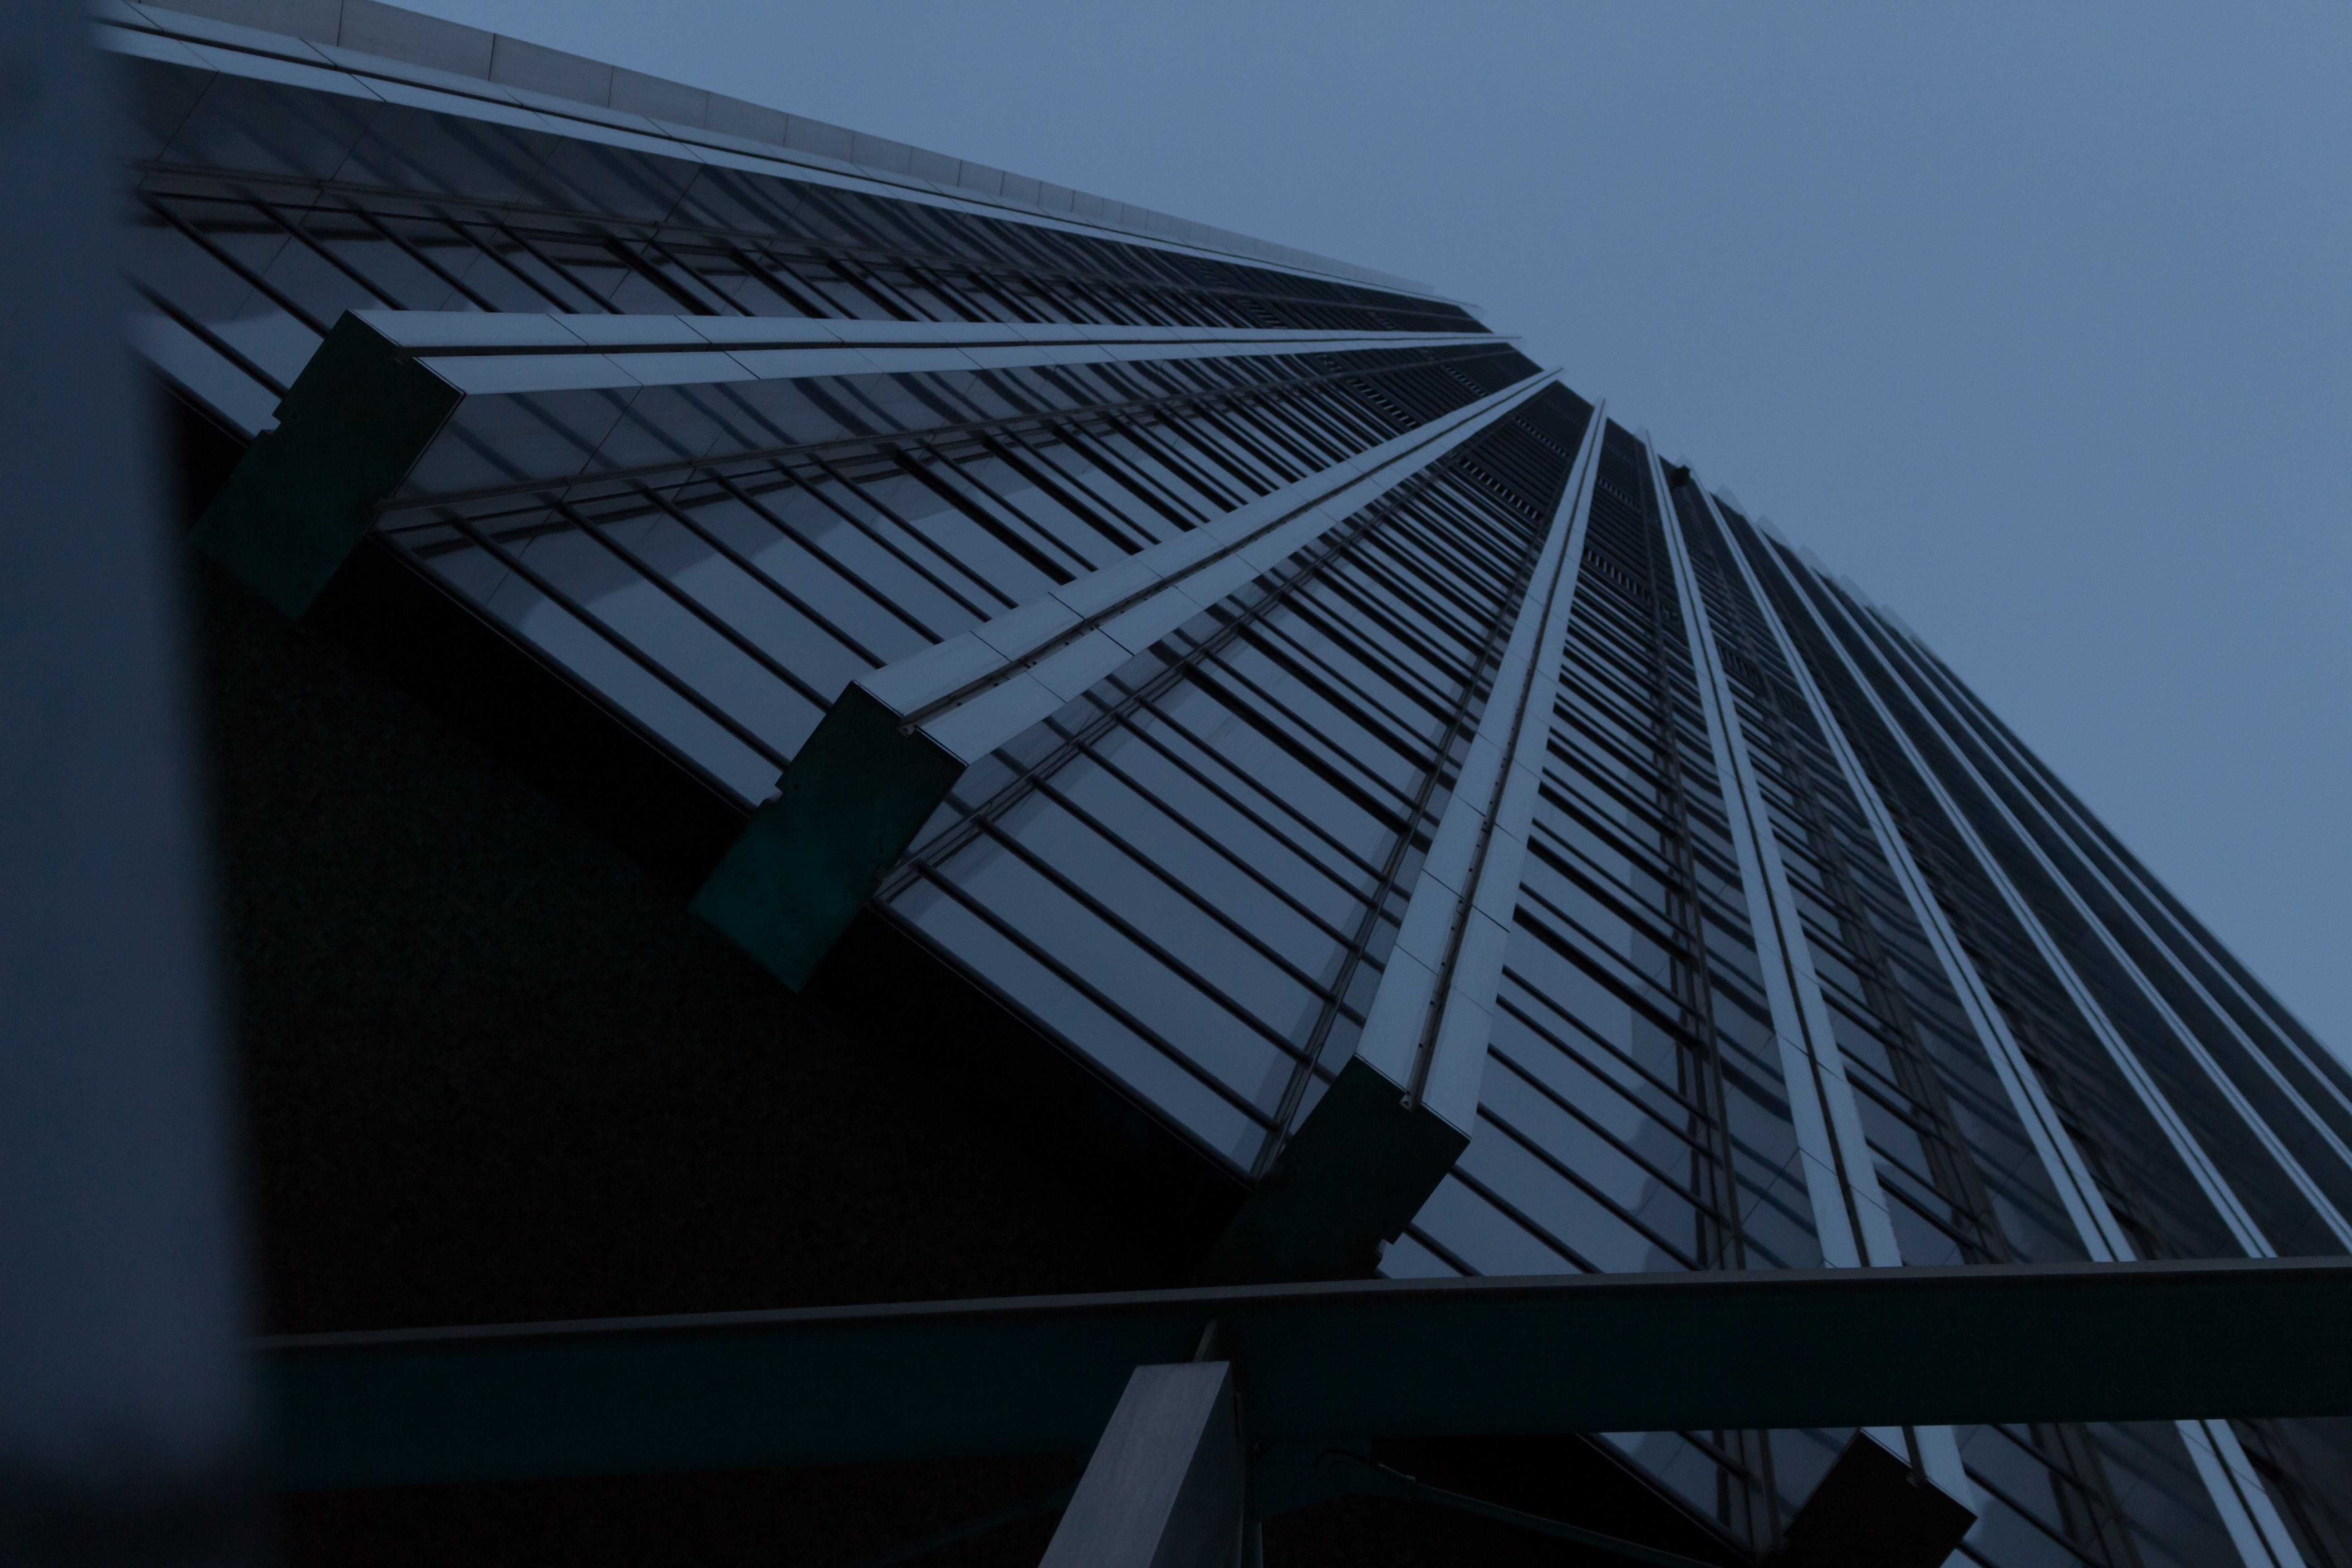 Low Angle Photography of High Rise Buildin G